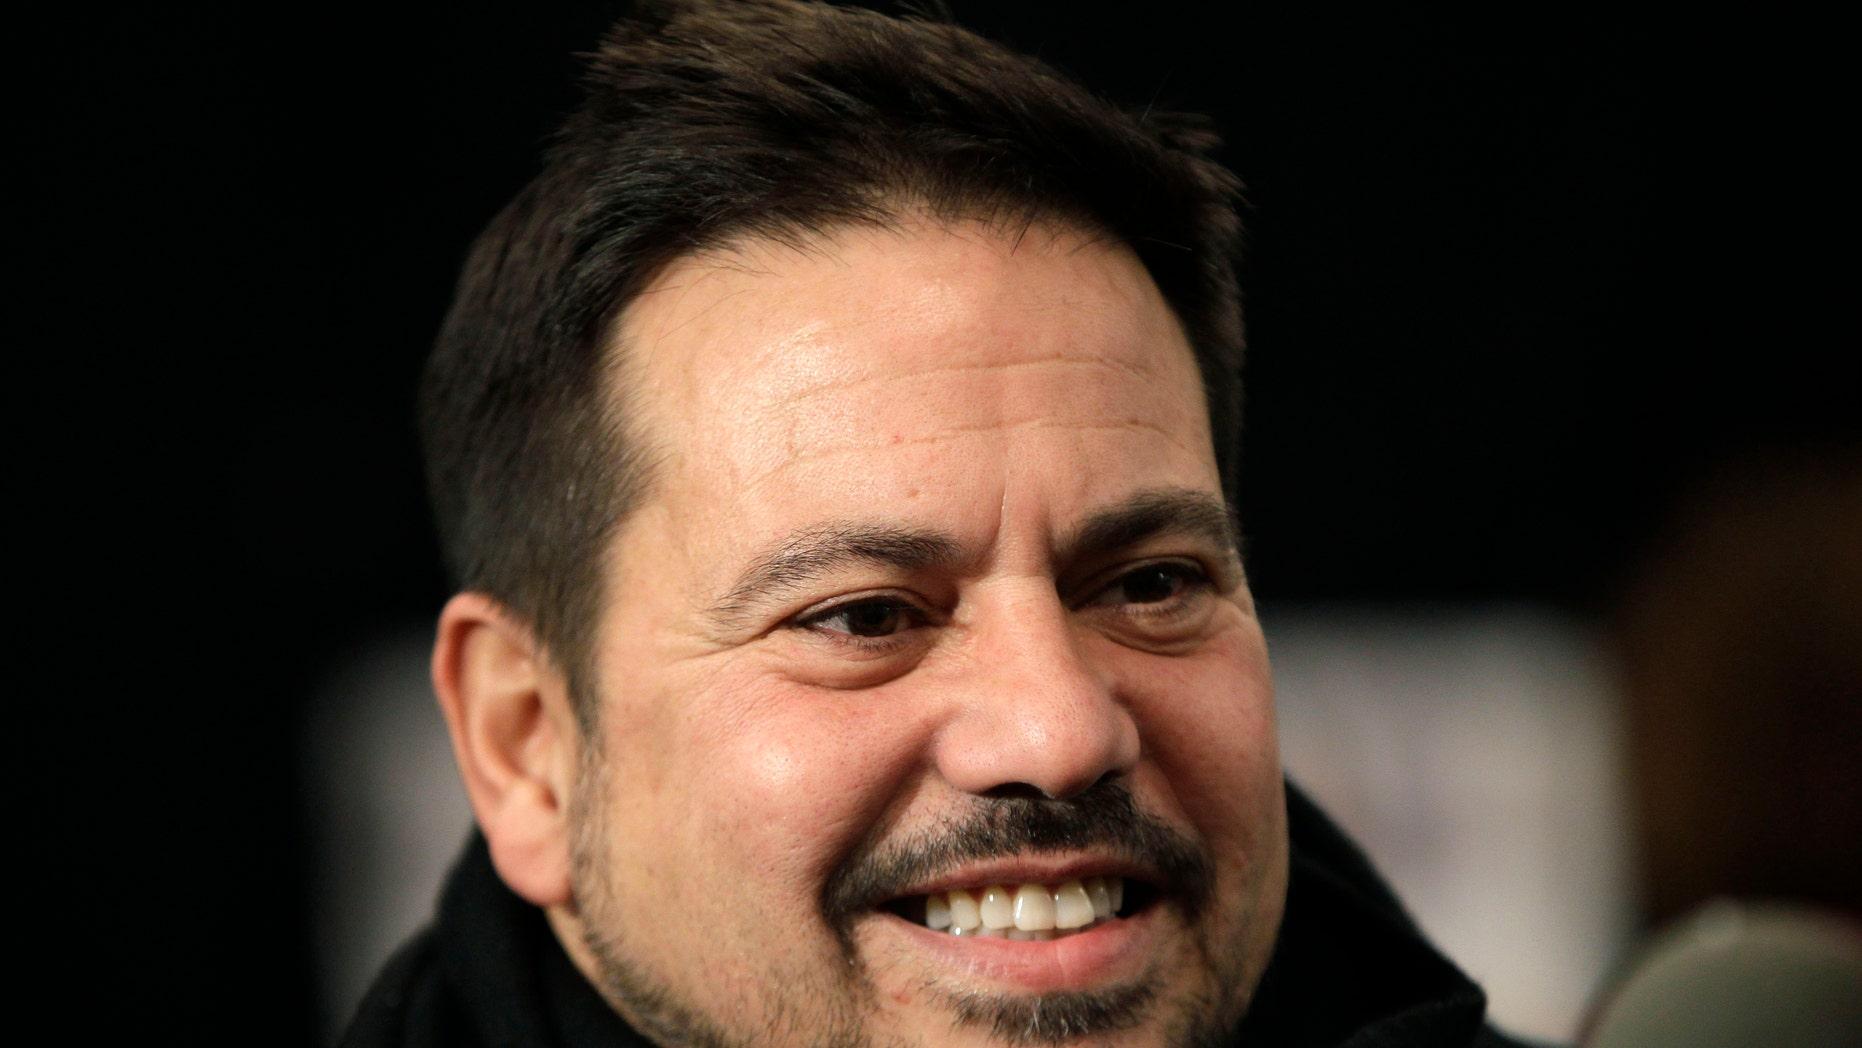 FILE - This Feb. 15, 2011 file photo shows designer Narciso Rodriguez backstage before the presentation of his Fall 2011 show at Lincoln Center during Fashion Week in New York. Rodriguez will receive a National Design Award this year from the Smithsonian's Cooper-Hewitt National Design Museum, along with 10 other top names in design. Rodriguez designed the black and red dress worn by first lady Michelle Obama in Chicago on election night in 2008. The dress recently went on display at the National Archives to represent her signature style. Earlier, Rodriguez designed Carolyn Bessette's wedding dress for her 1996 marriage to John F. Kennedy Jr. (AP Photo/Kathy Willens, File)